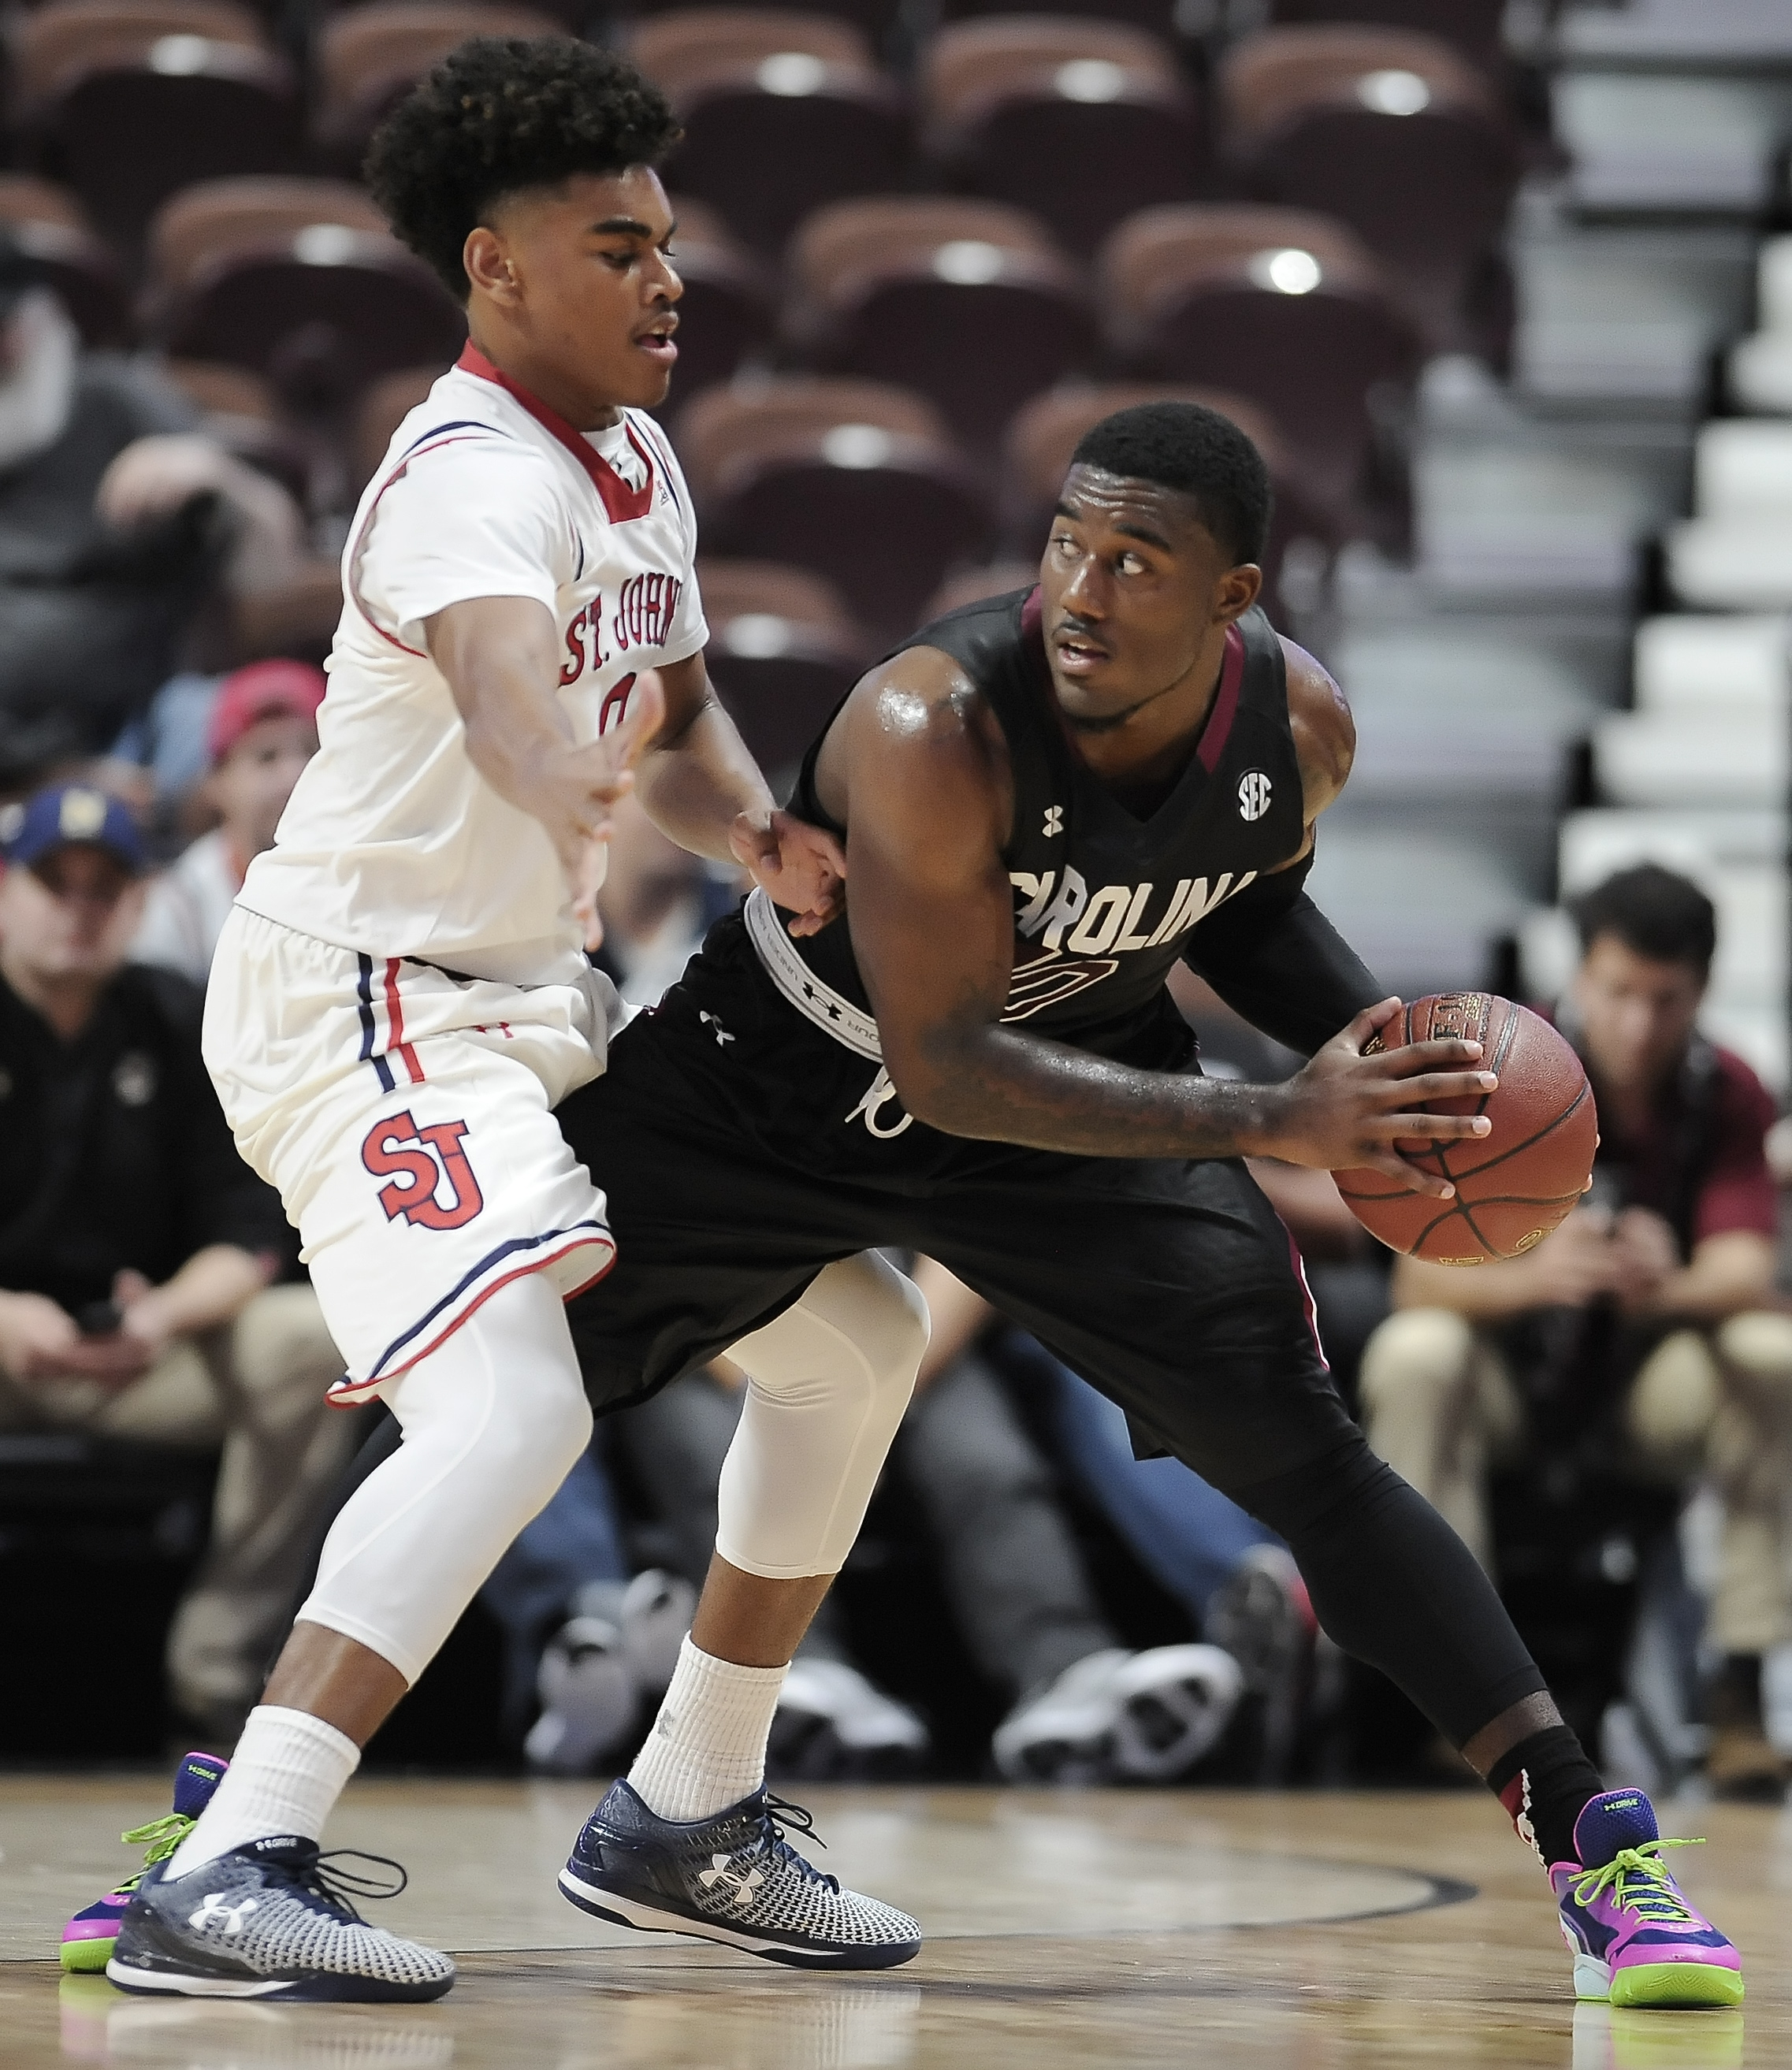 St. John's Malik Ellison, left, guards South Carolina's Duane Notice, during the second half of an NCAA college basketball game Tuesday, Dec. 22, 2015, in Uncasville, Conn. South Carolina won 75-61. (AP Photo/Jessica Hill)